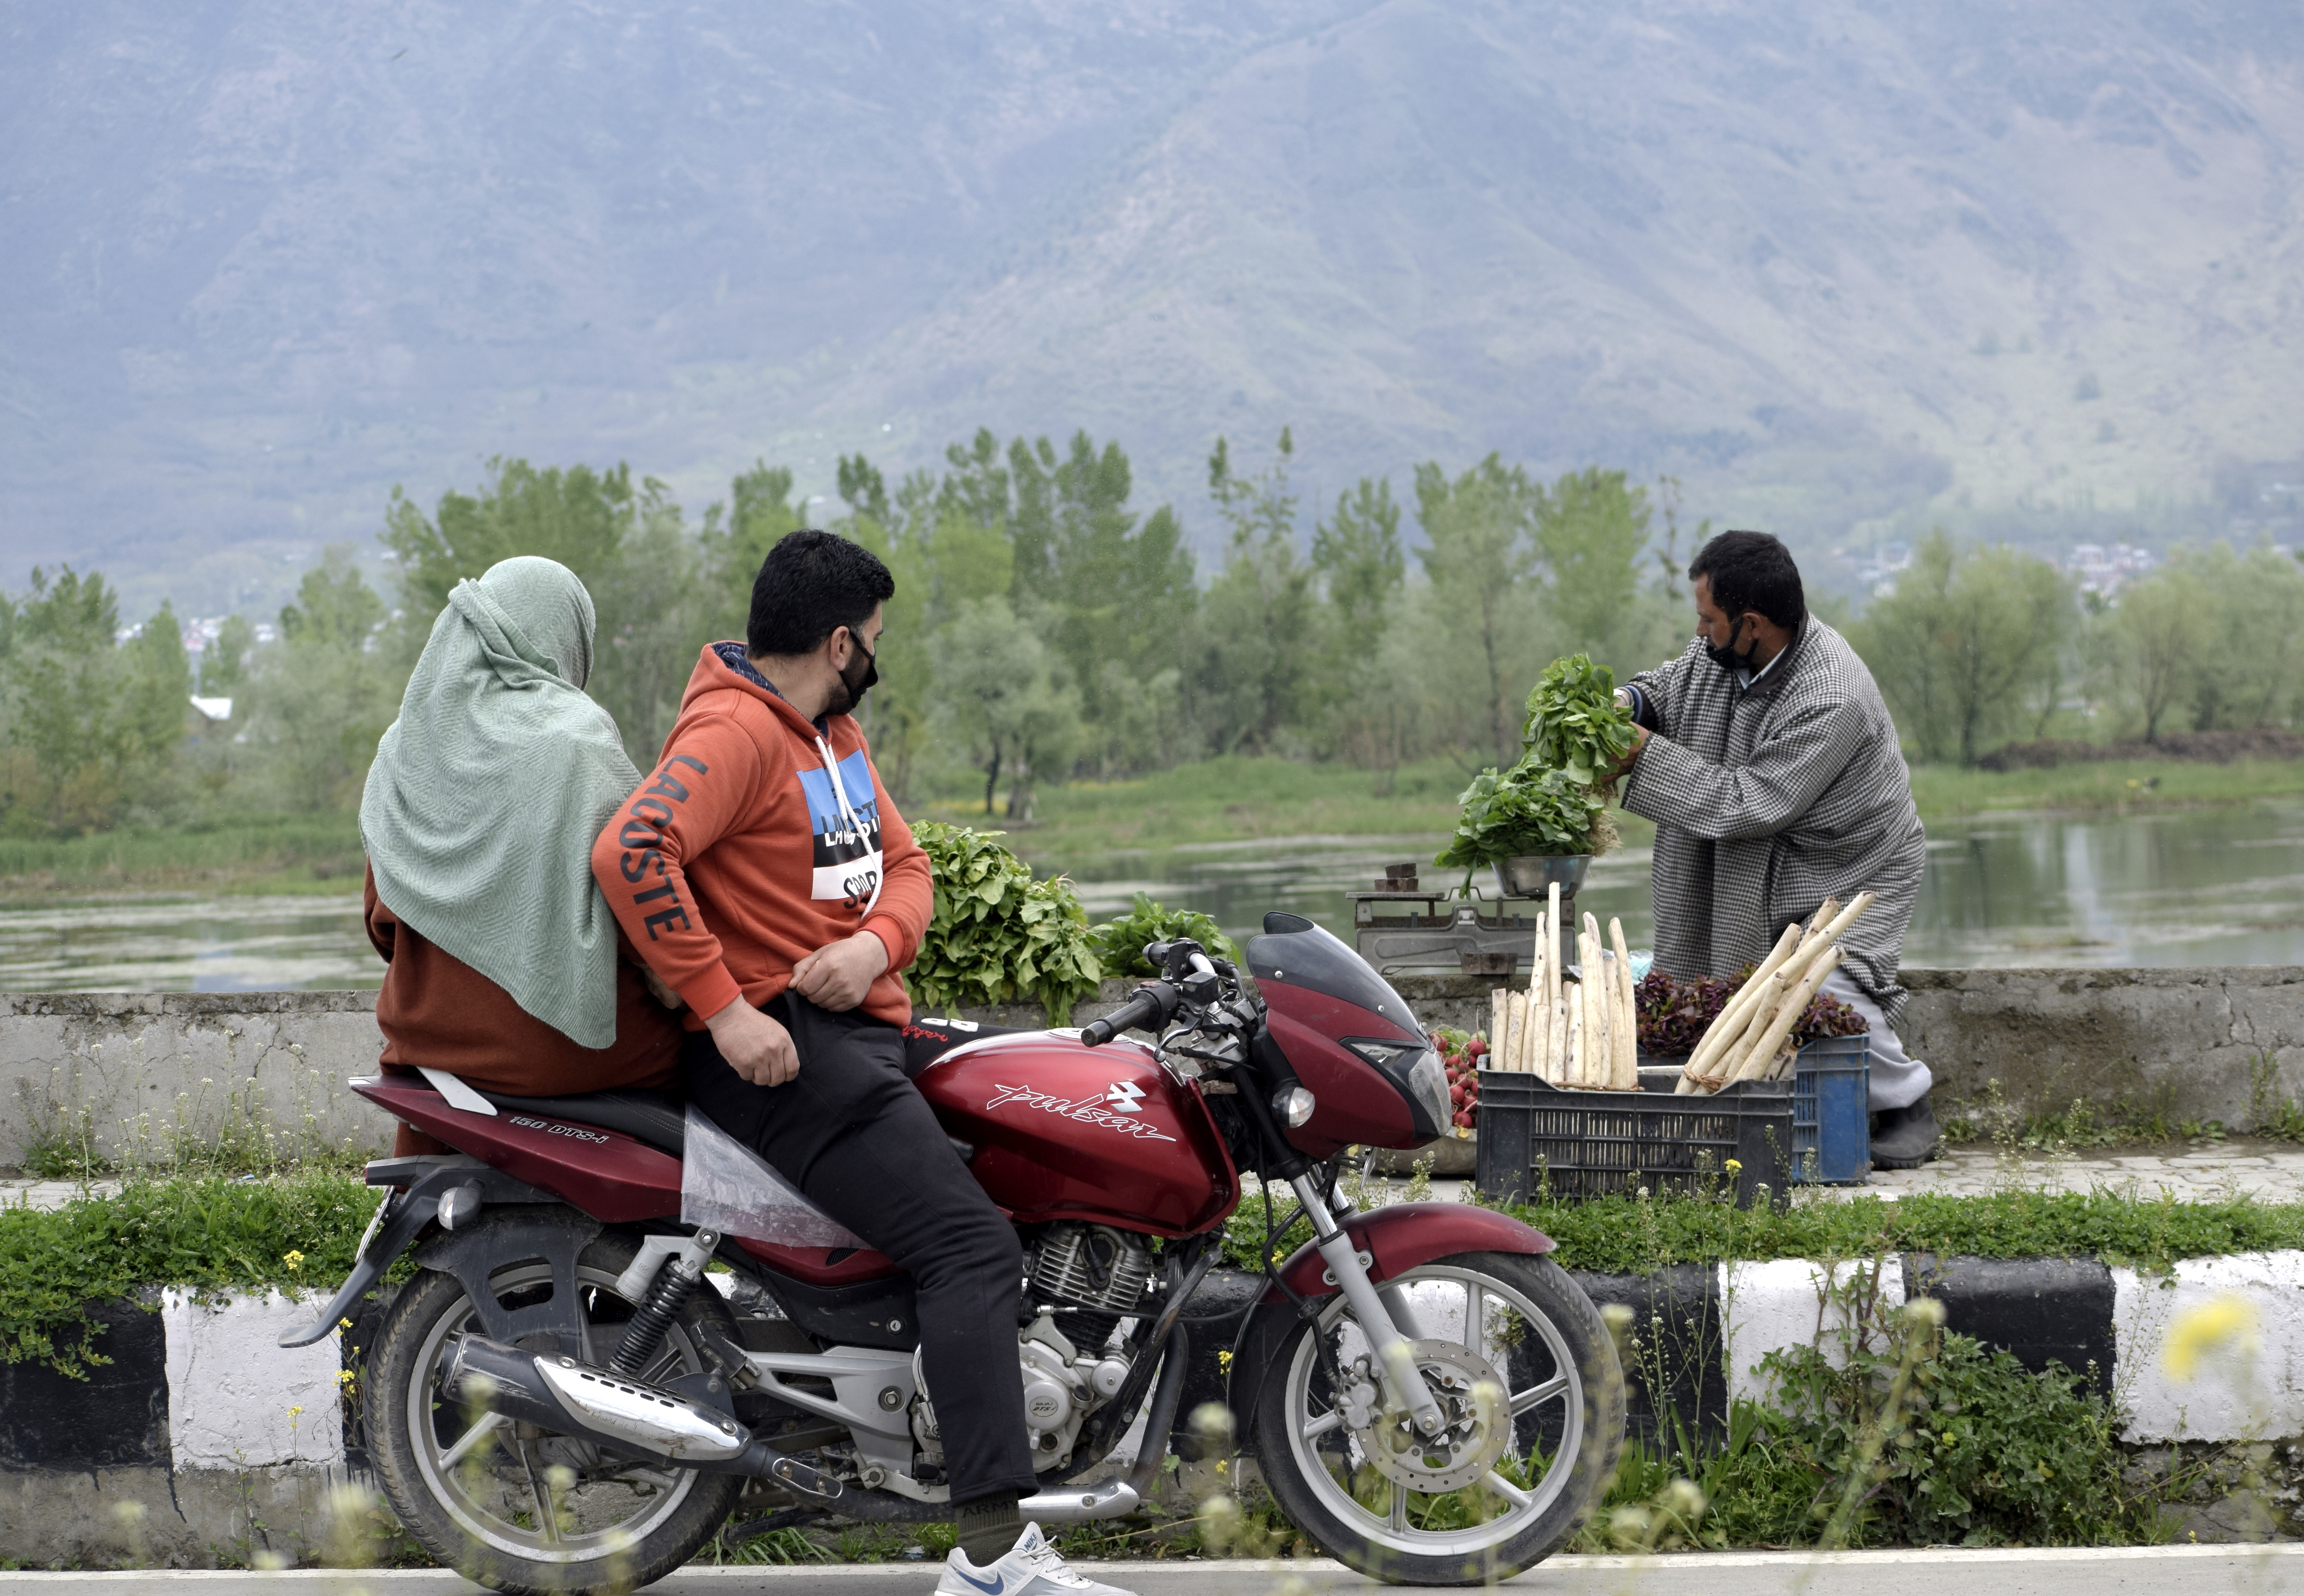 Man and woman on motorcycle near a worker and a lake